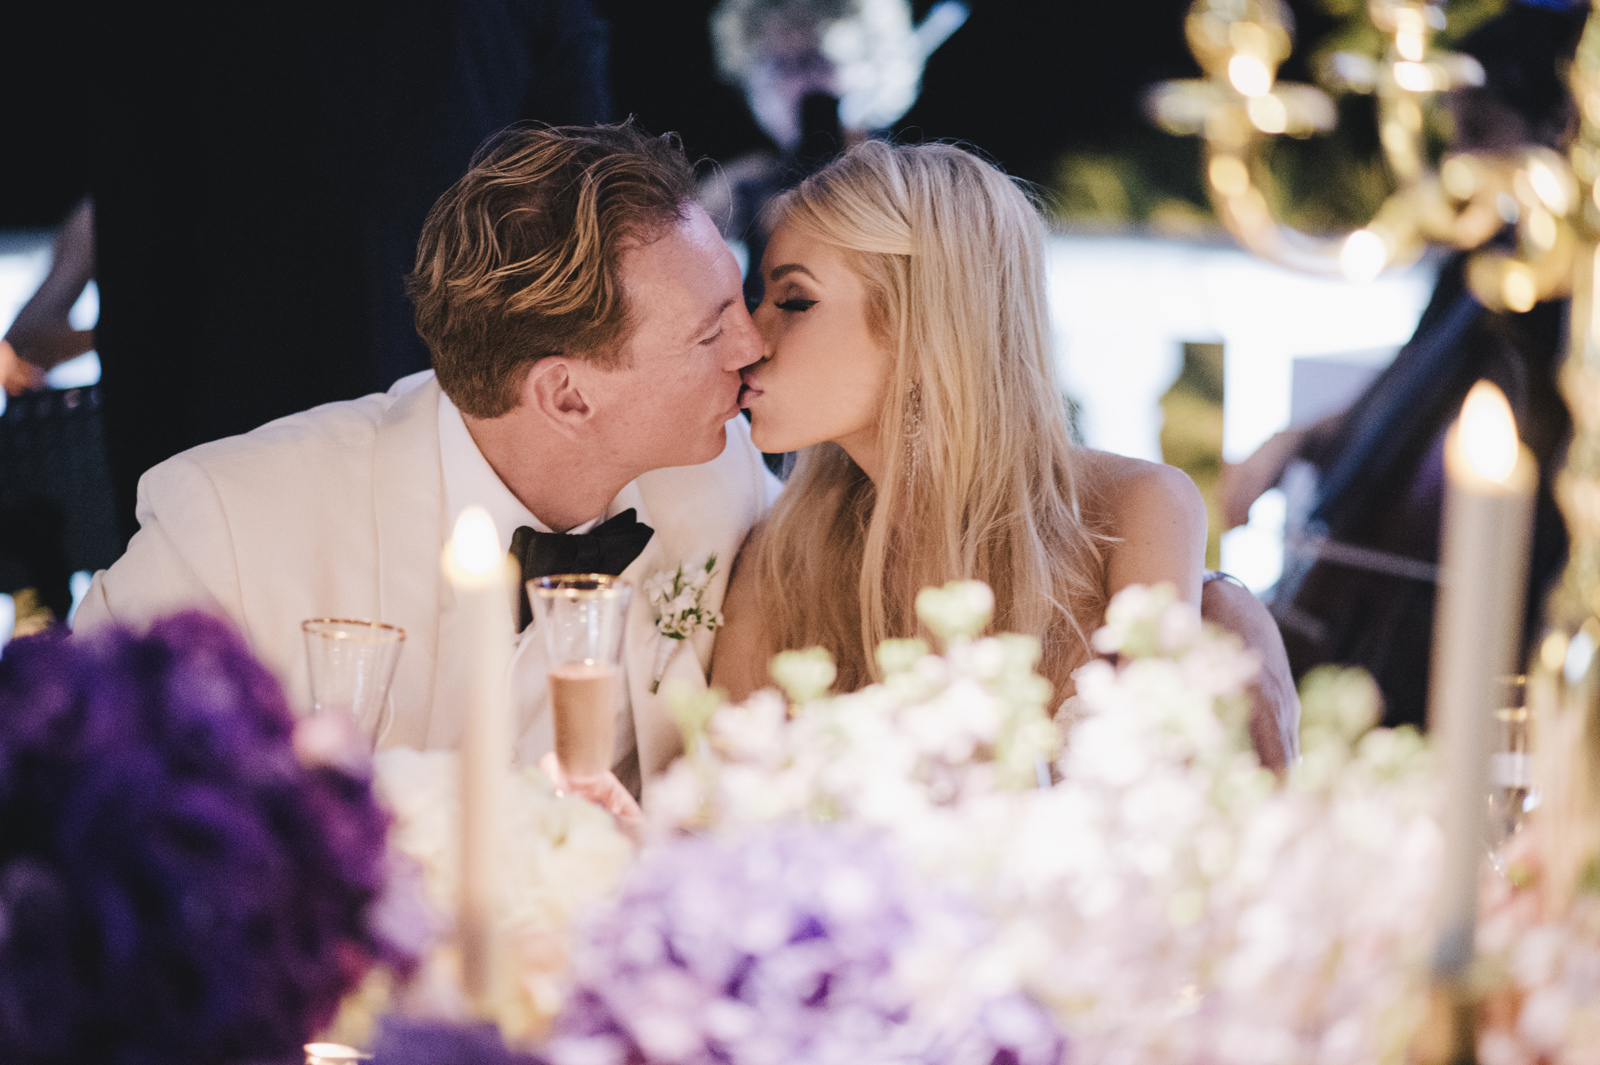 the groom kisses the bride at the wedding table